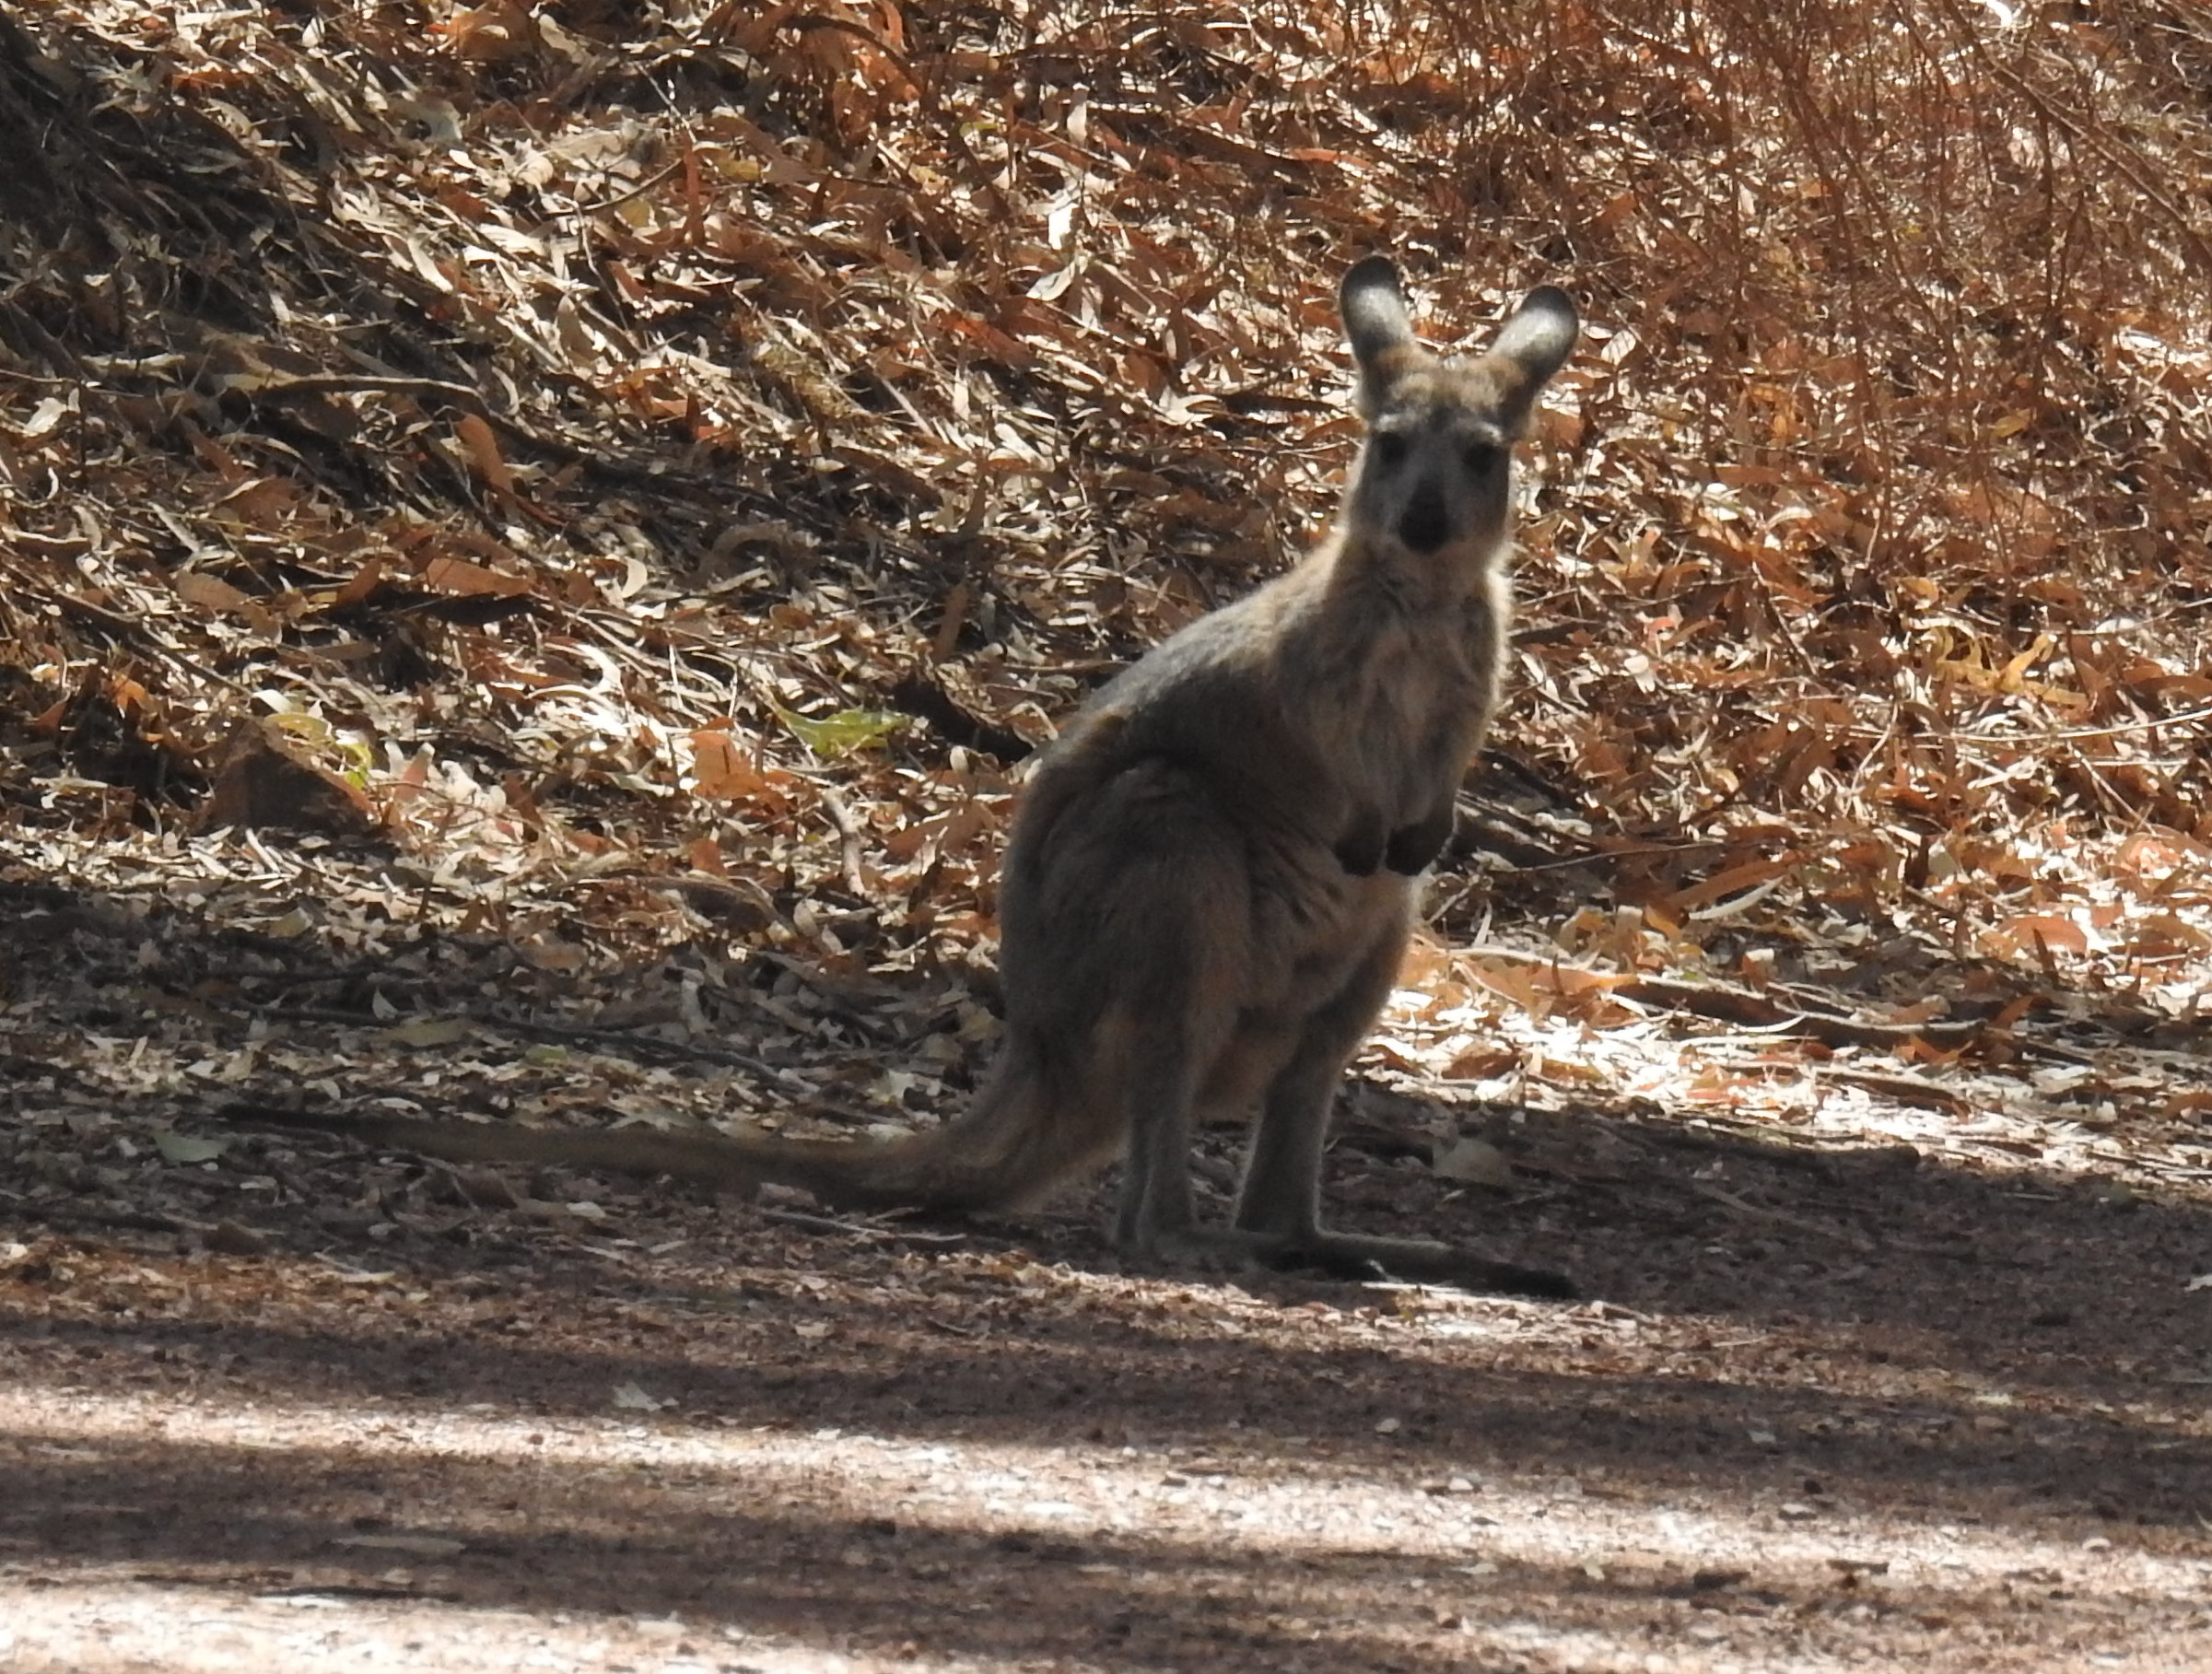 WallabyWilpena